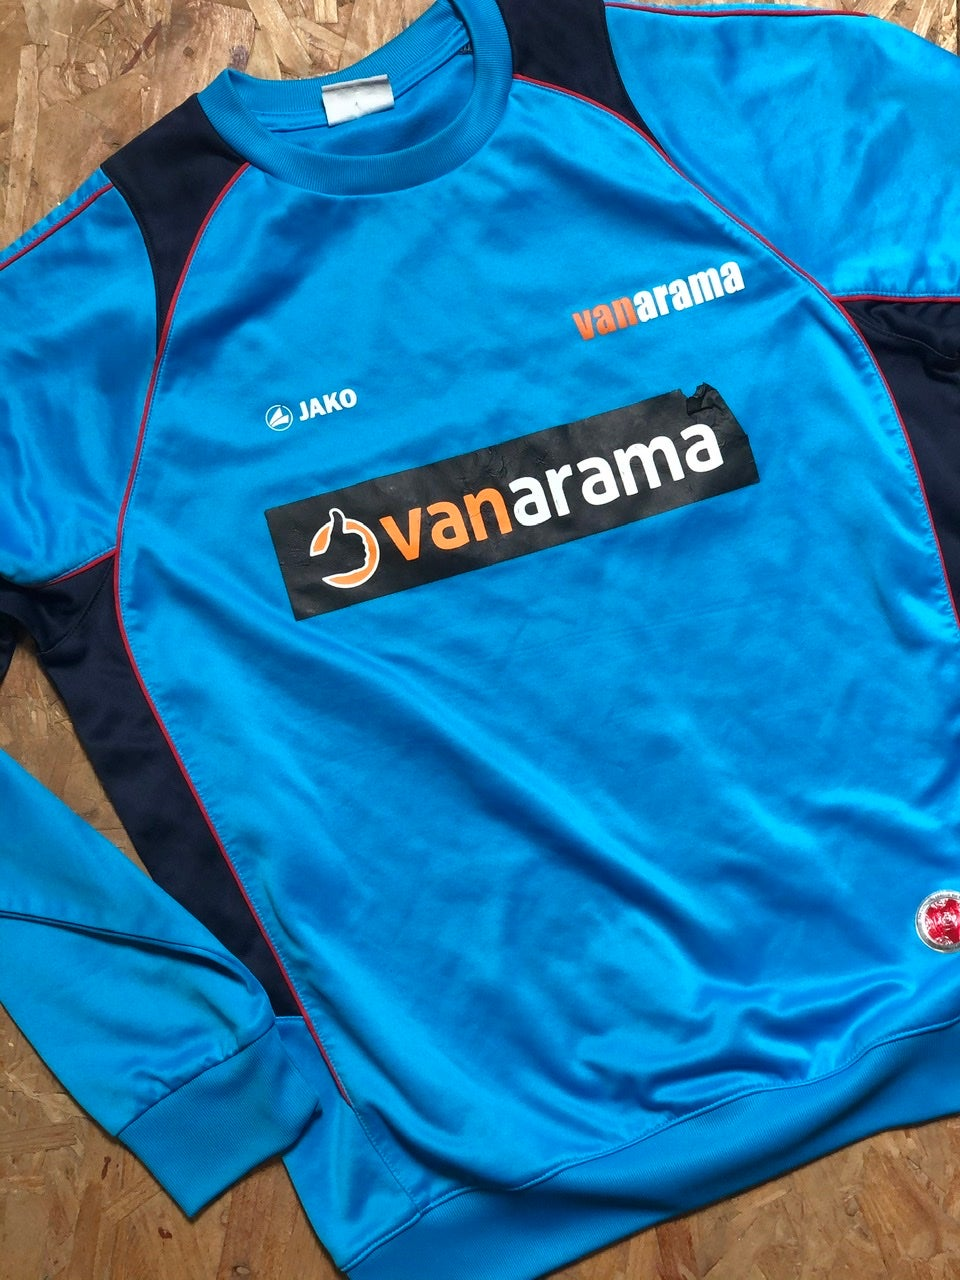 Player Issue Jako Vanarama Team Sweater